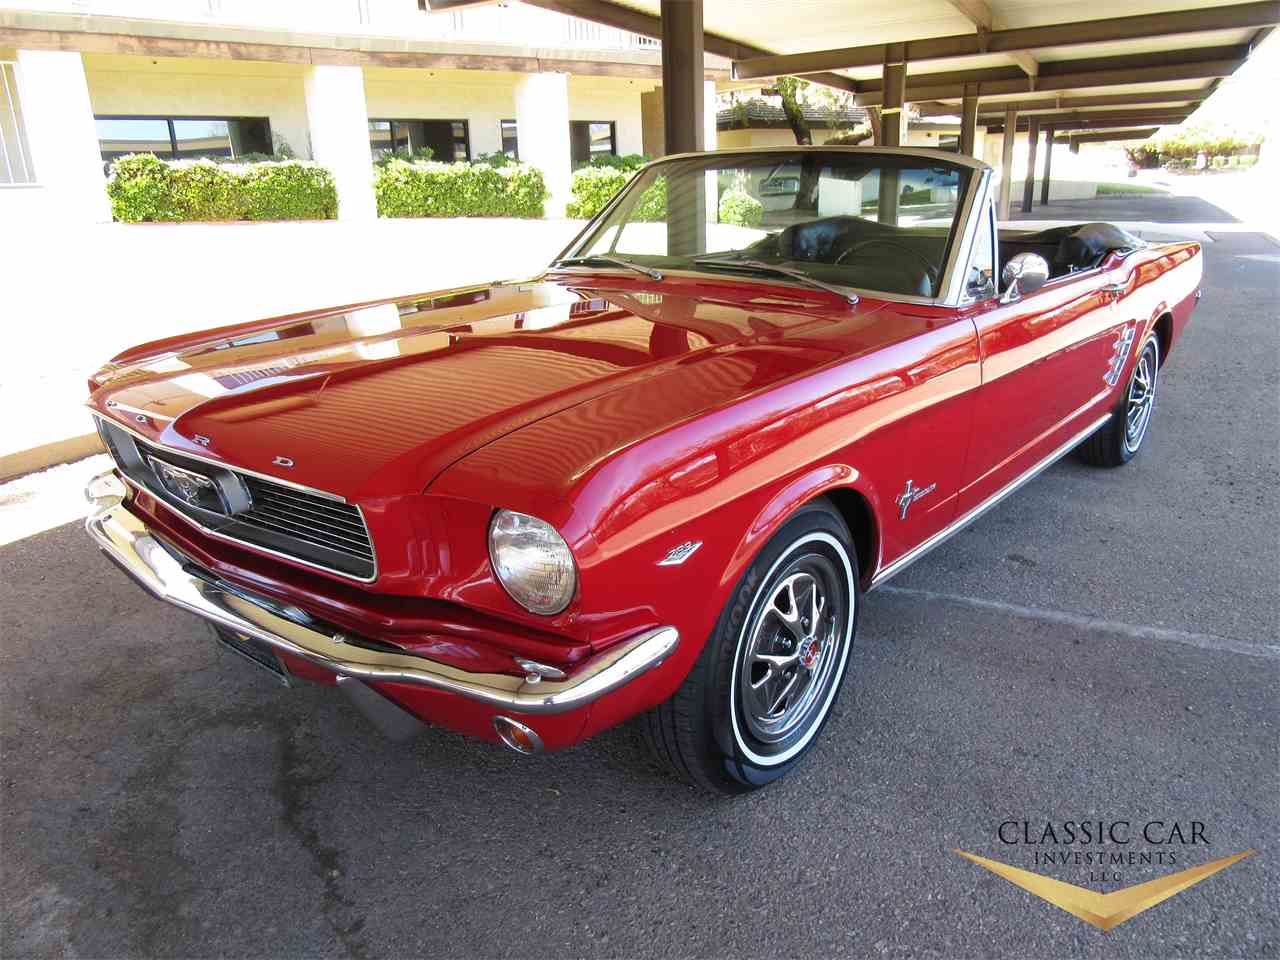 Large Picture of Classic 1966 Mustang located in scottsdale Arizona - $29,500.00 - MTOM